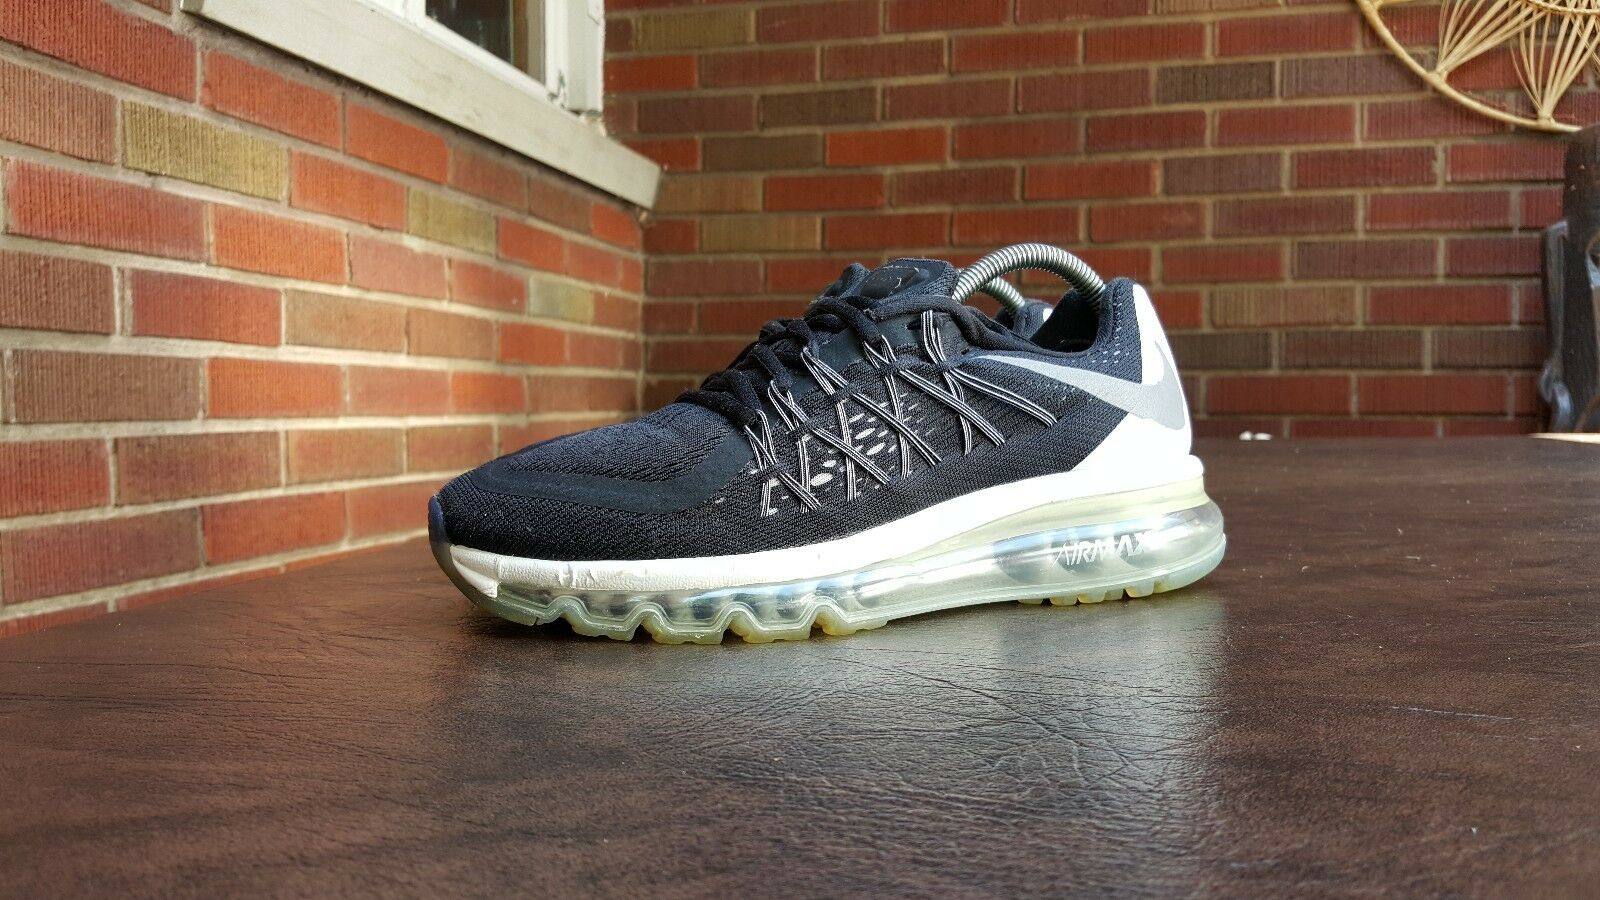 WOMENS NIKE AIR MAX 2015 RUNNING SHOES Price reduction The most popular shoes for men and women